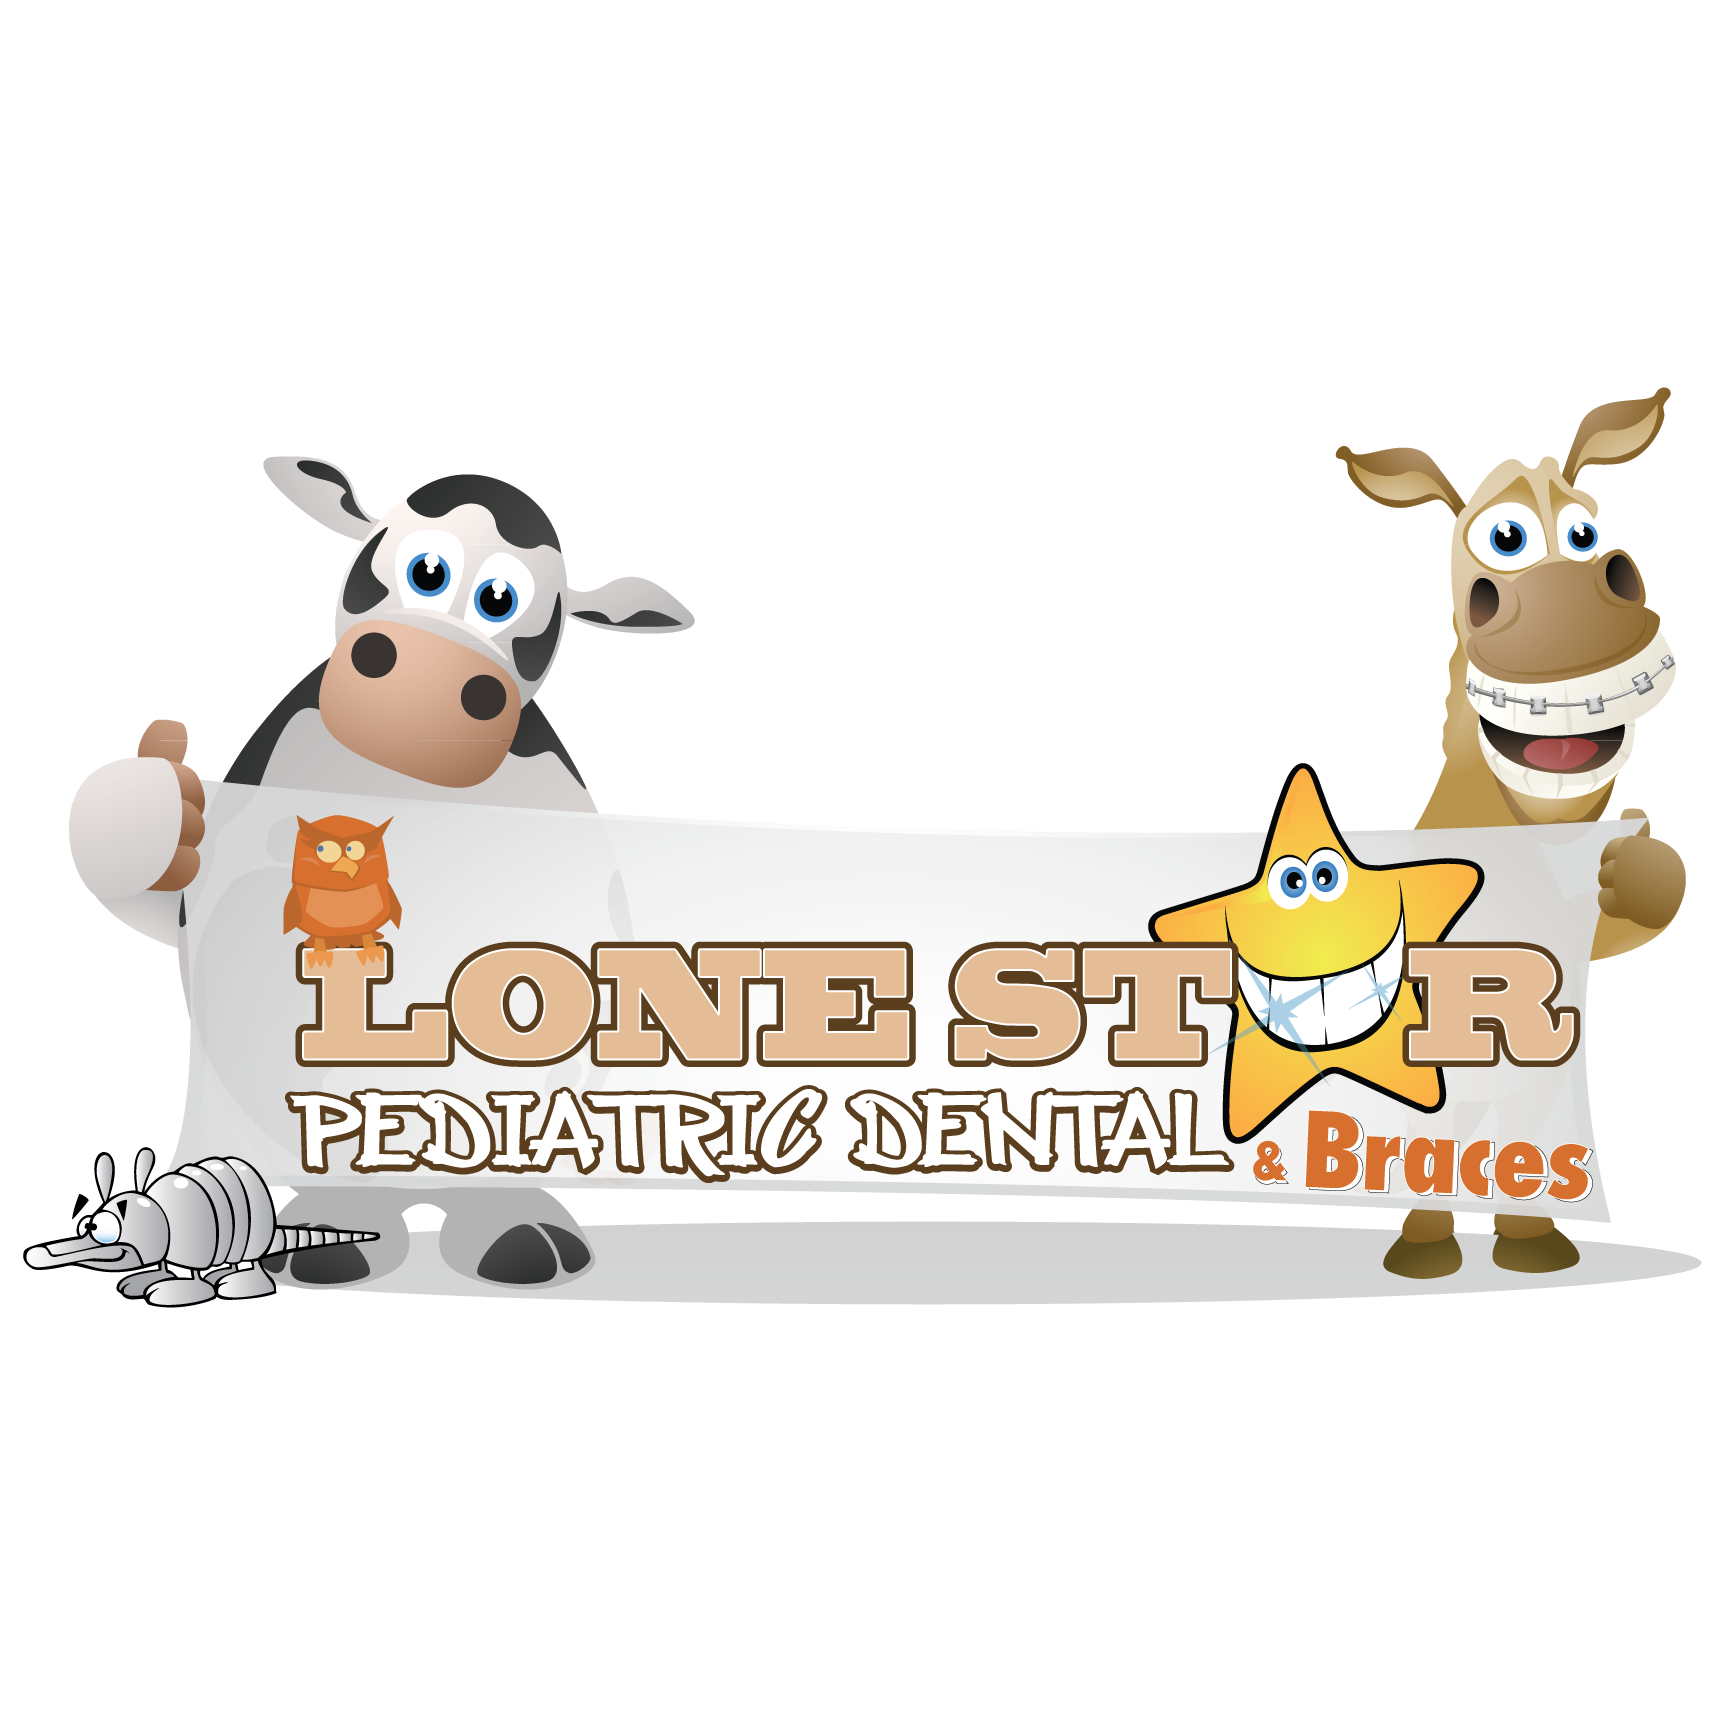 Lone Star Pediatric Dental & Braces image 6